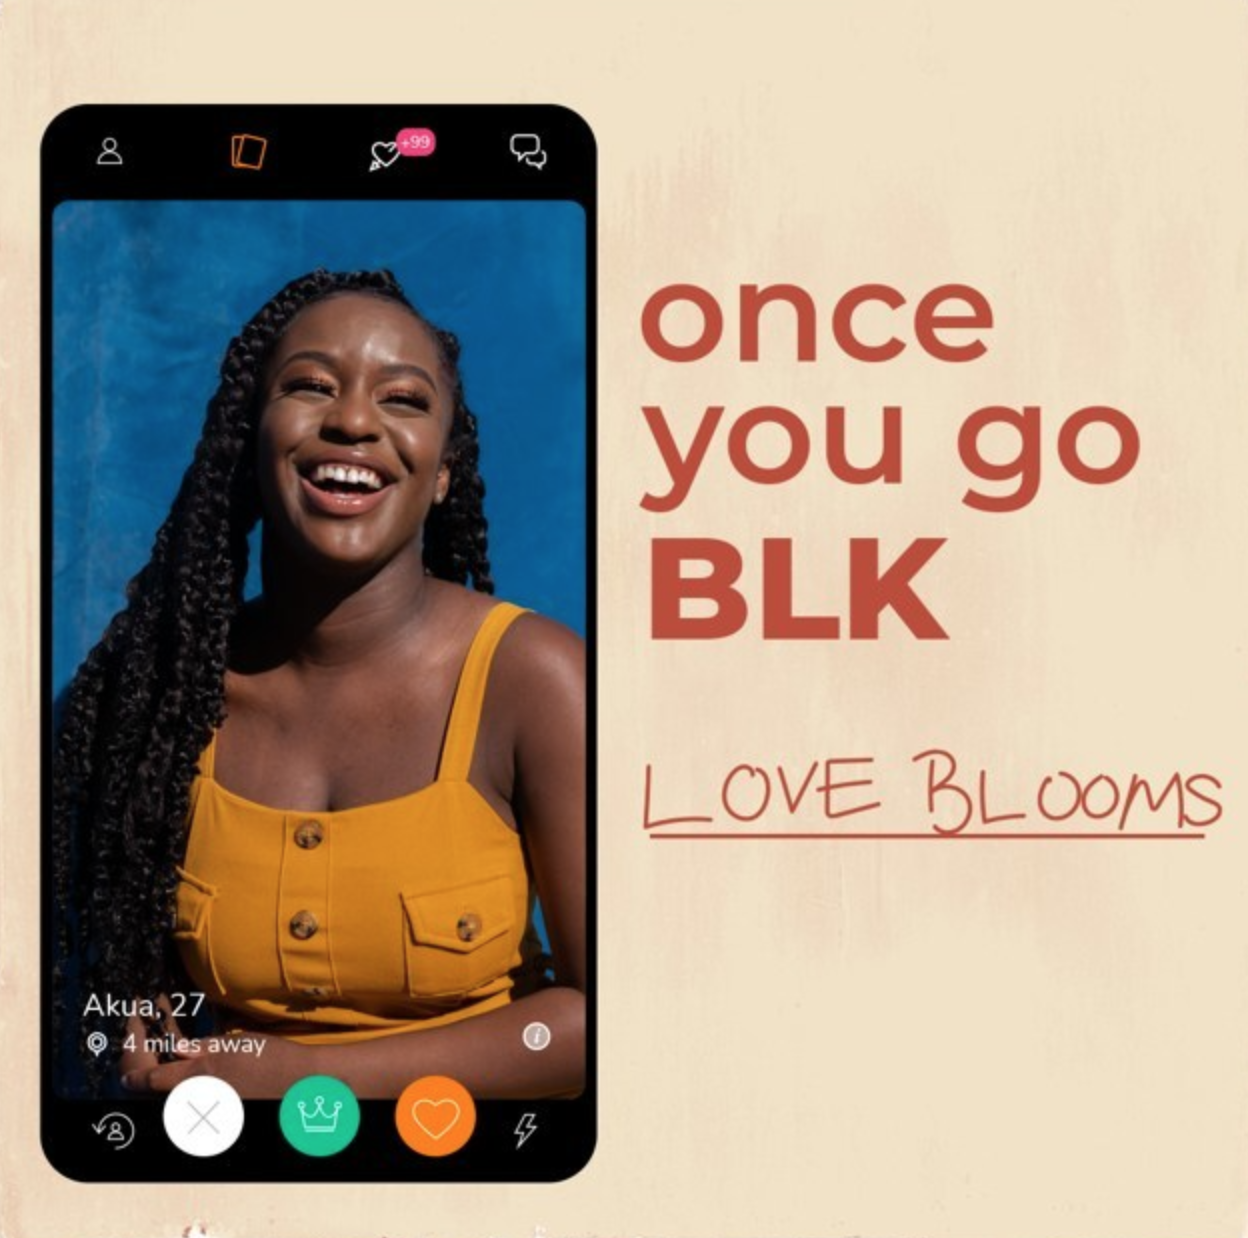 BLK Launches 'Once You Go BLK' Campaign to Reclaim Outdated Stereotypes